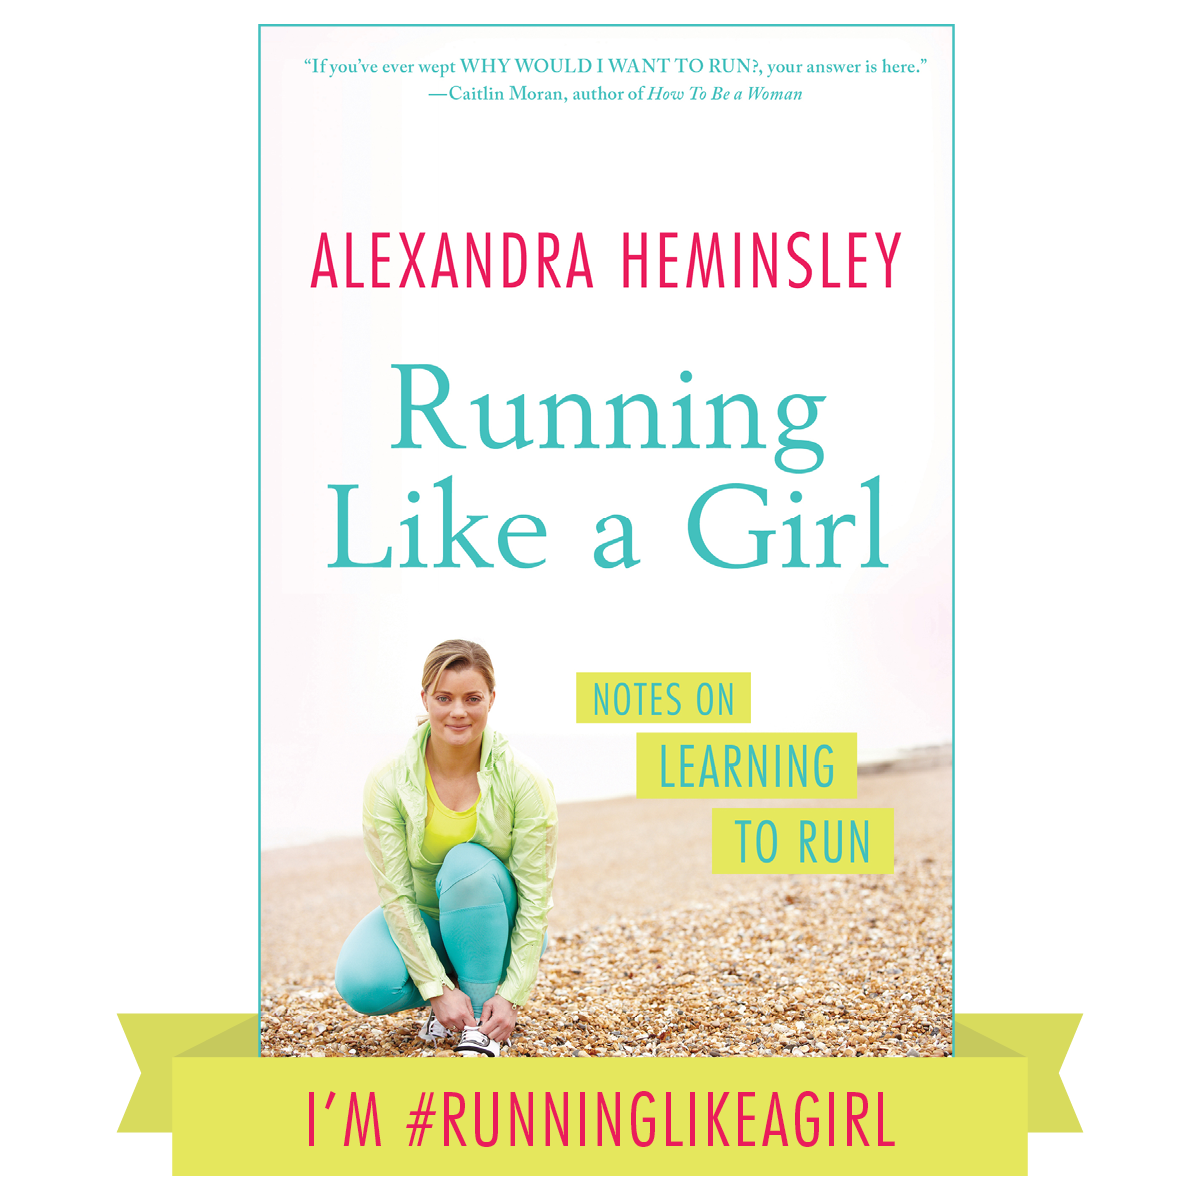 #runninglikeagirl with Simon & Schuster and Alexandra Heminsley